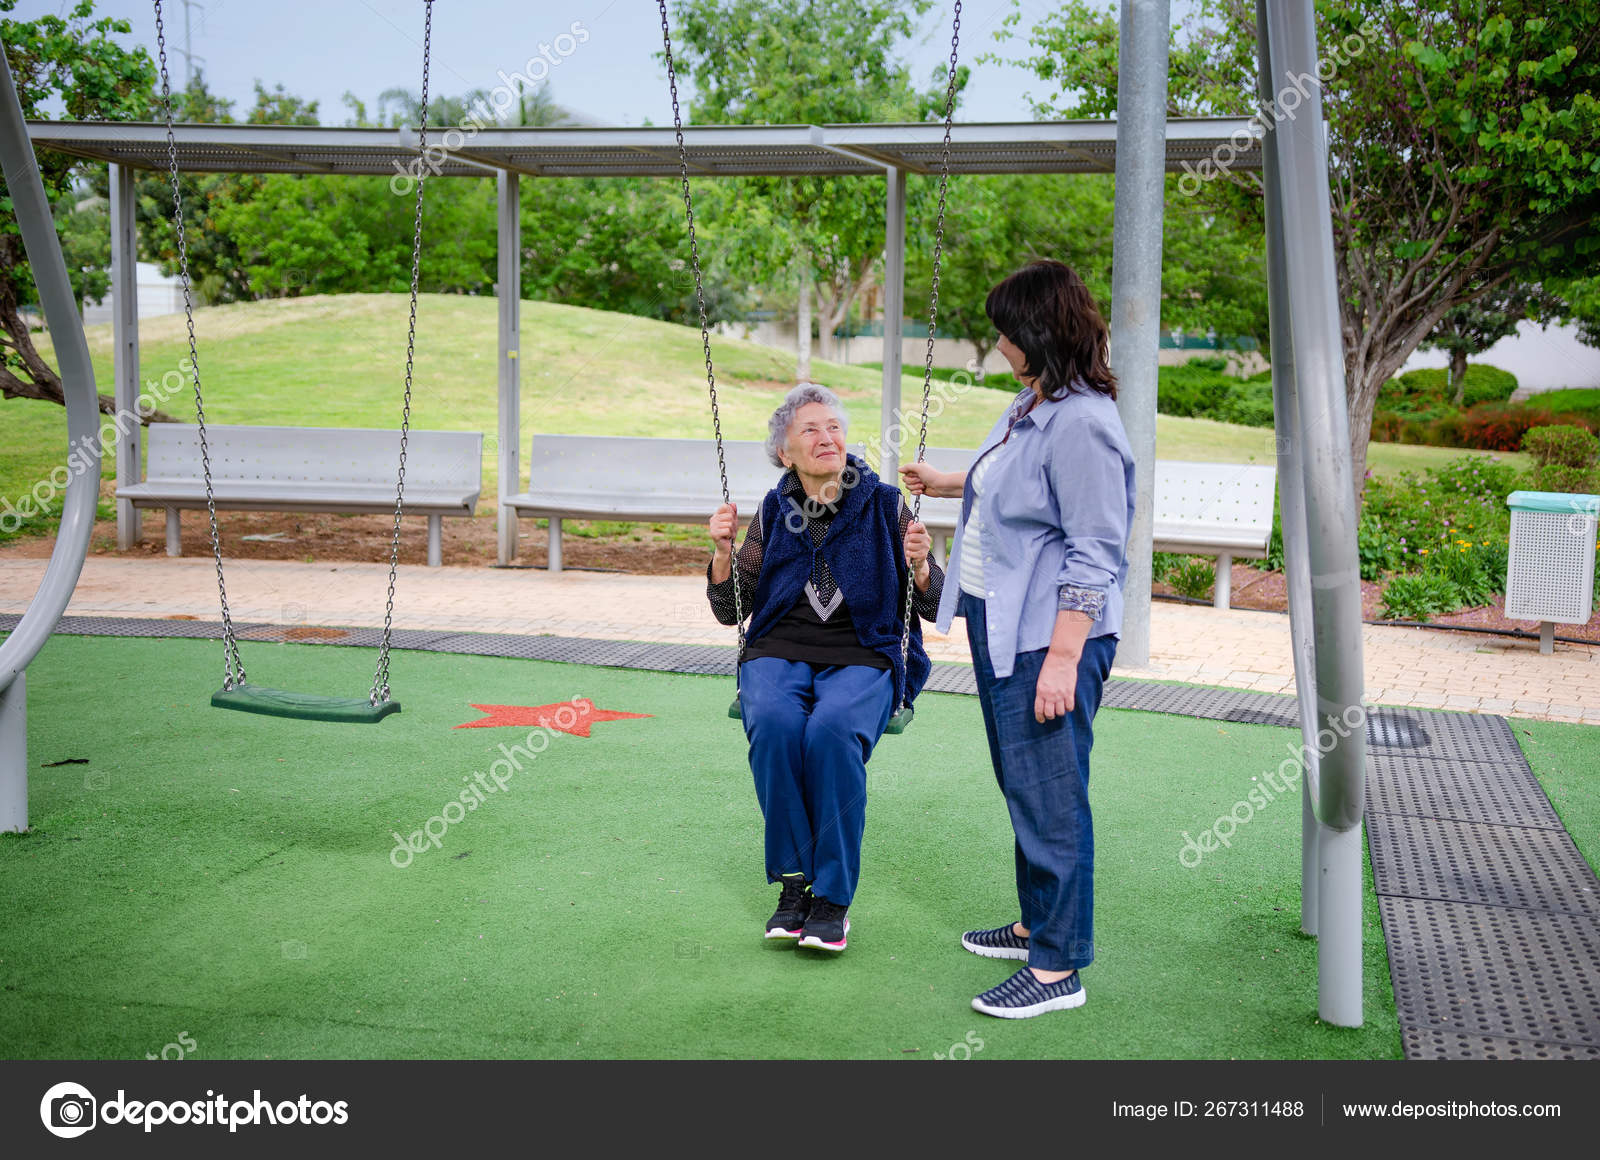 Elderly woman likes swinging during a daily walk in the park. Nearby is a female carer who helps her.